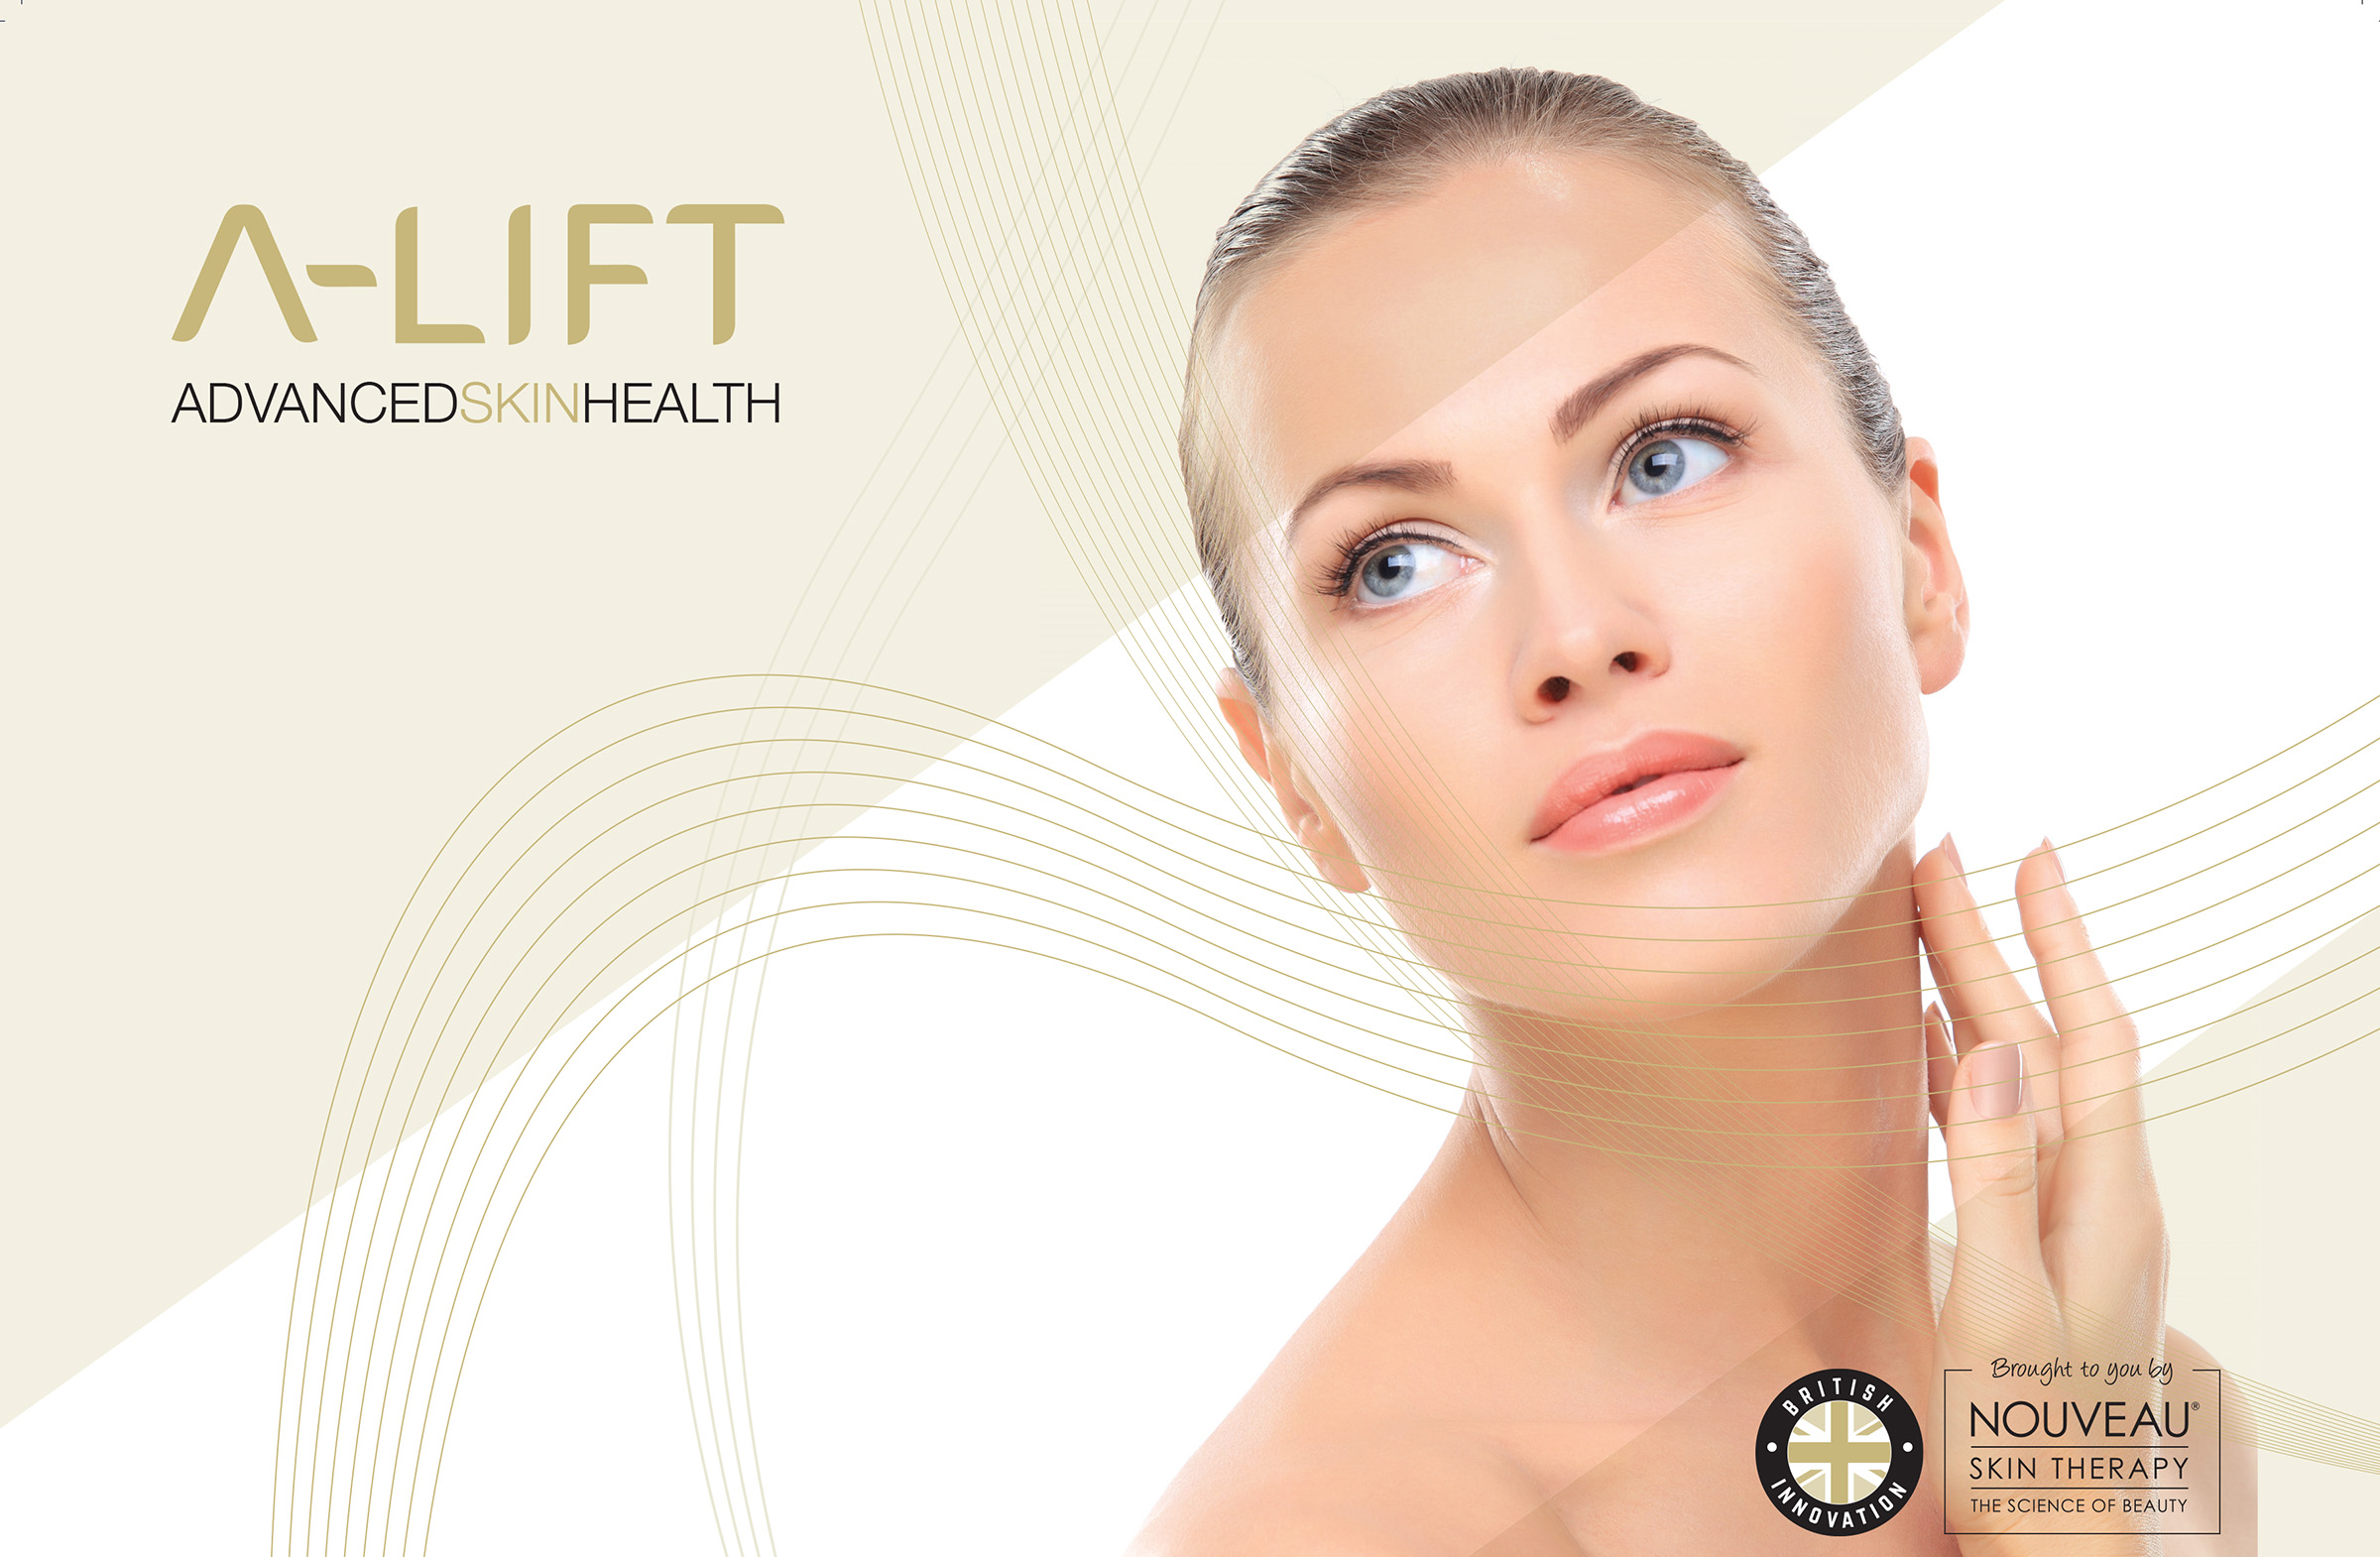 A-Lift – The Treatment Everyone is Talking About